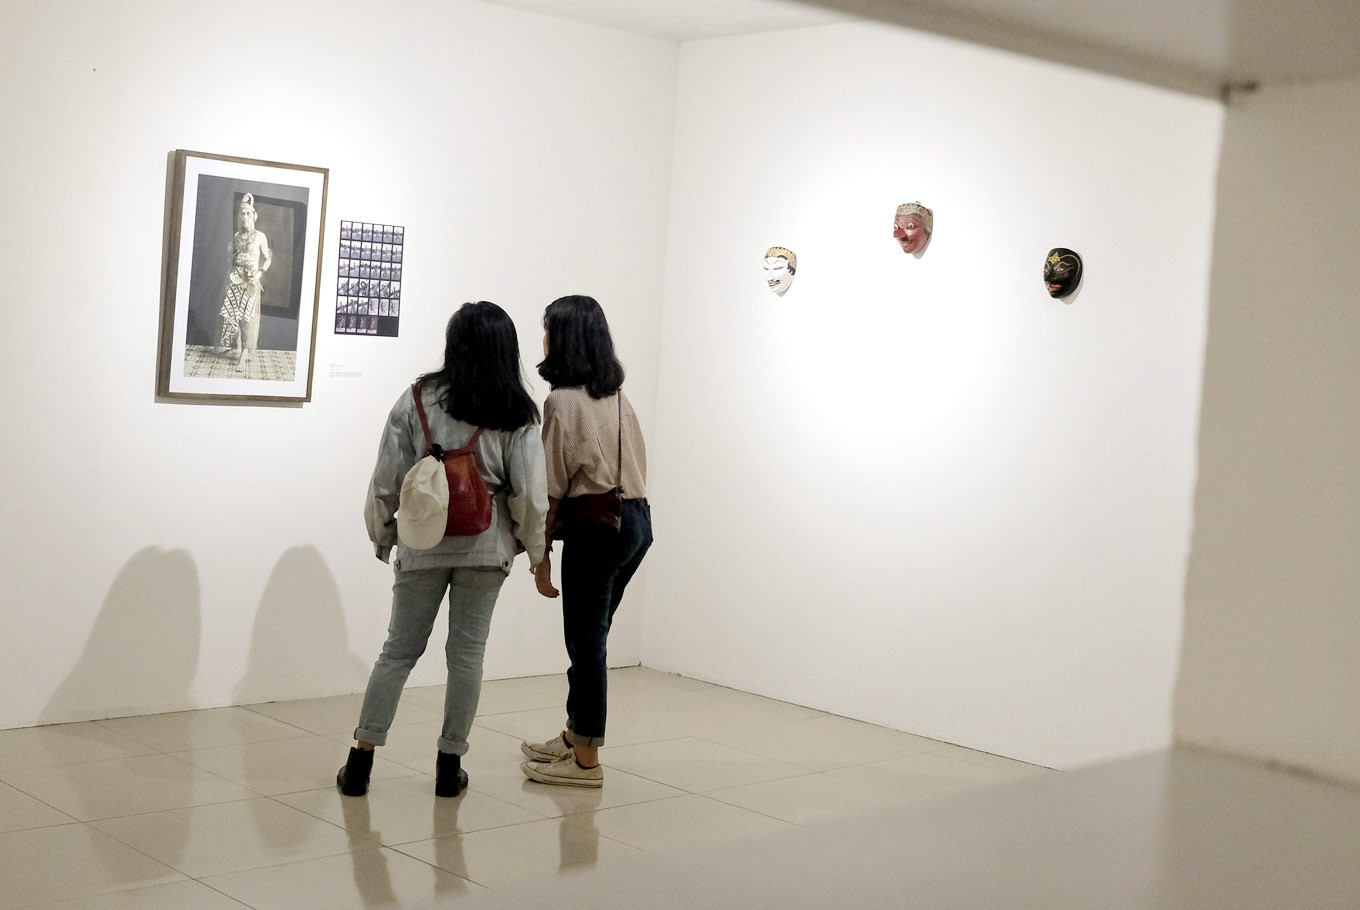 State palaces display collections in August's 'Indonesia World Spirit'